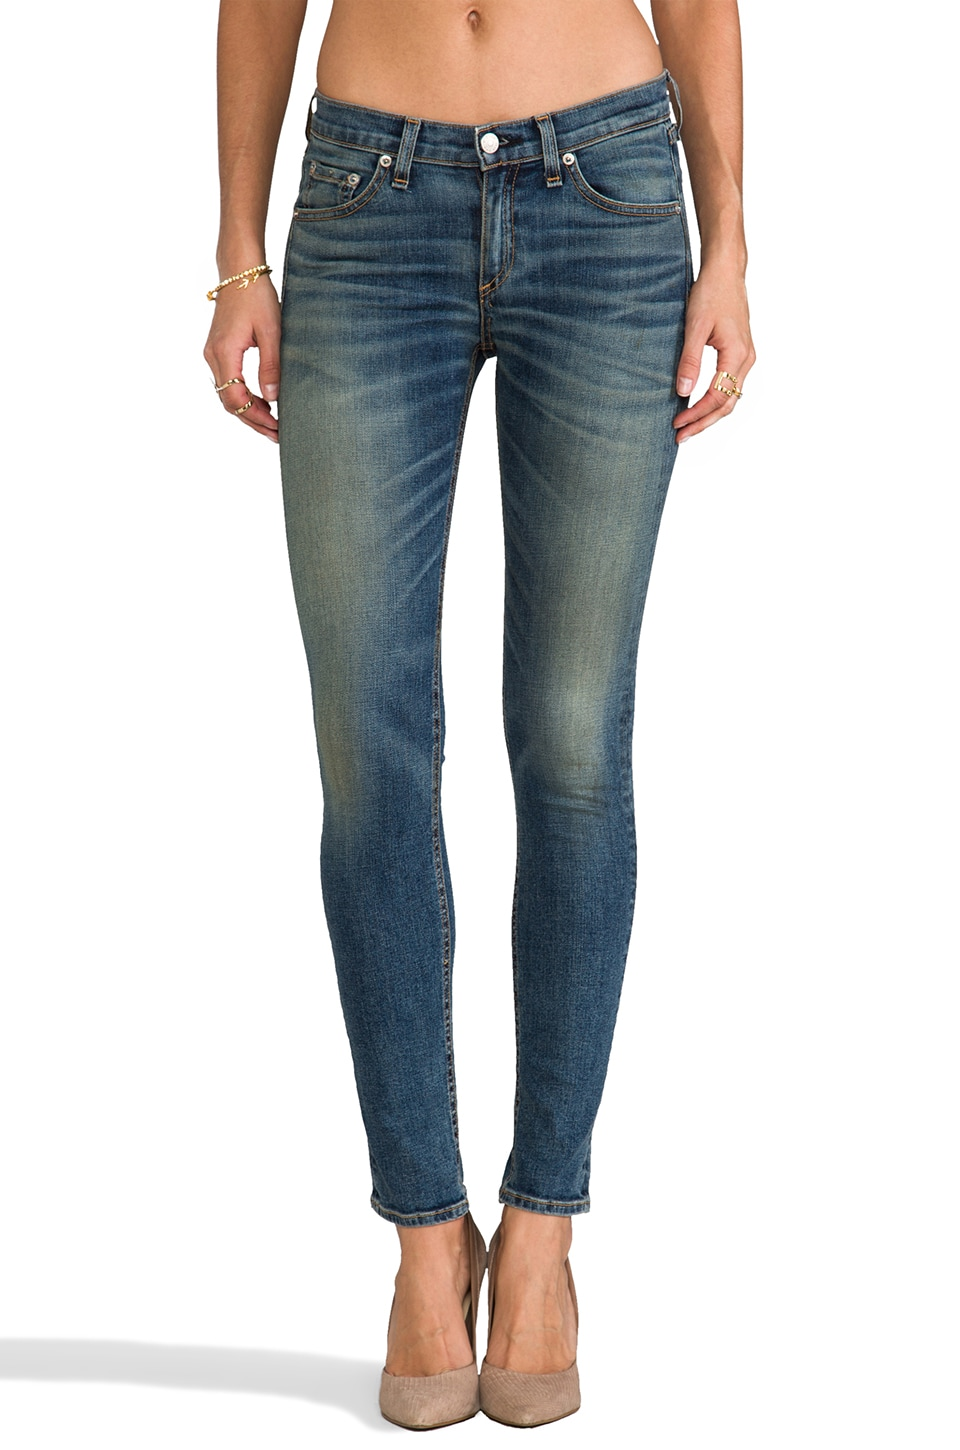 rag & bone/JEAN The Skinny Jean in Brimfield